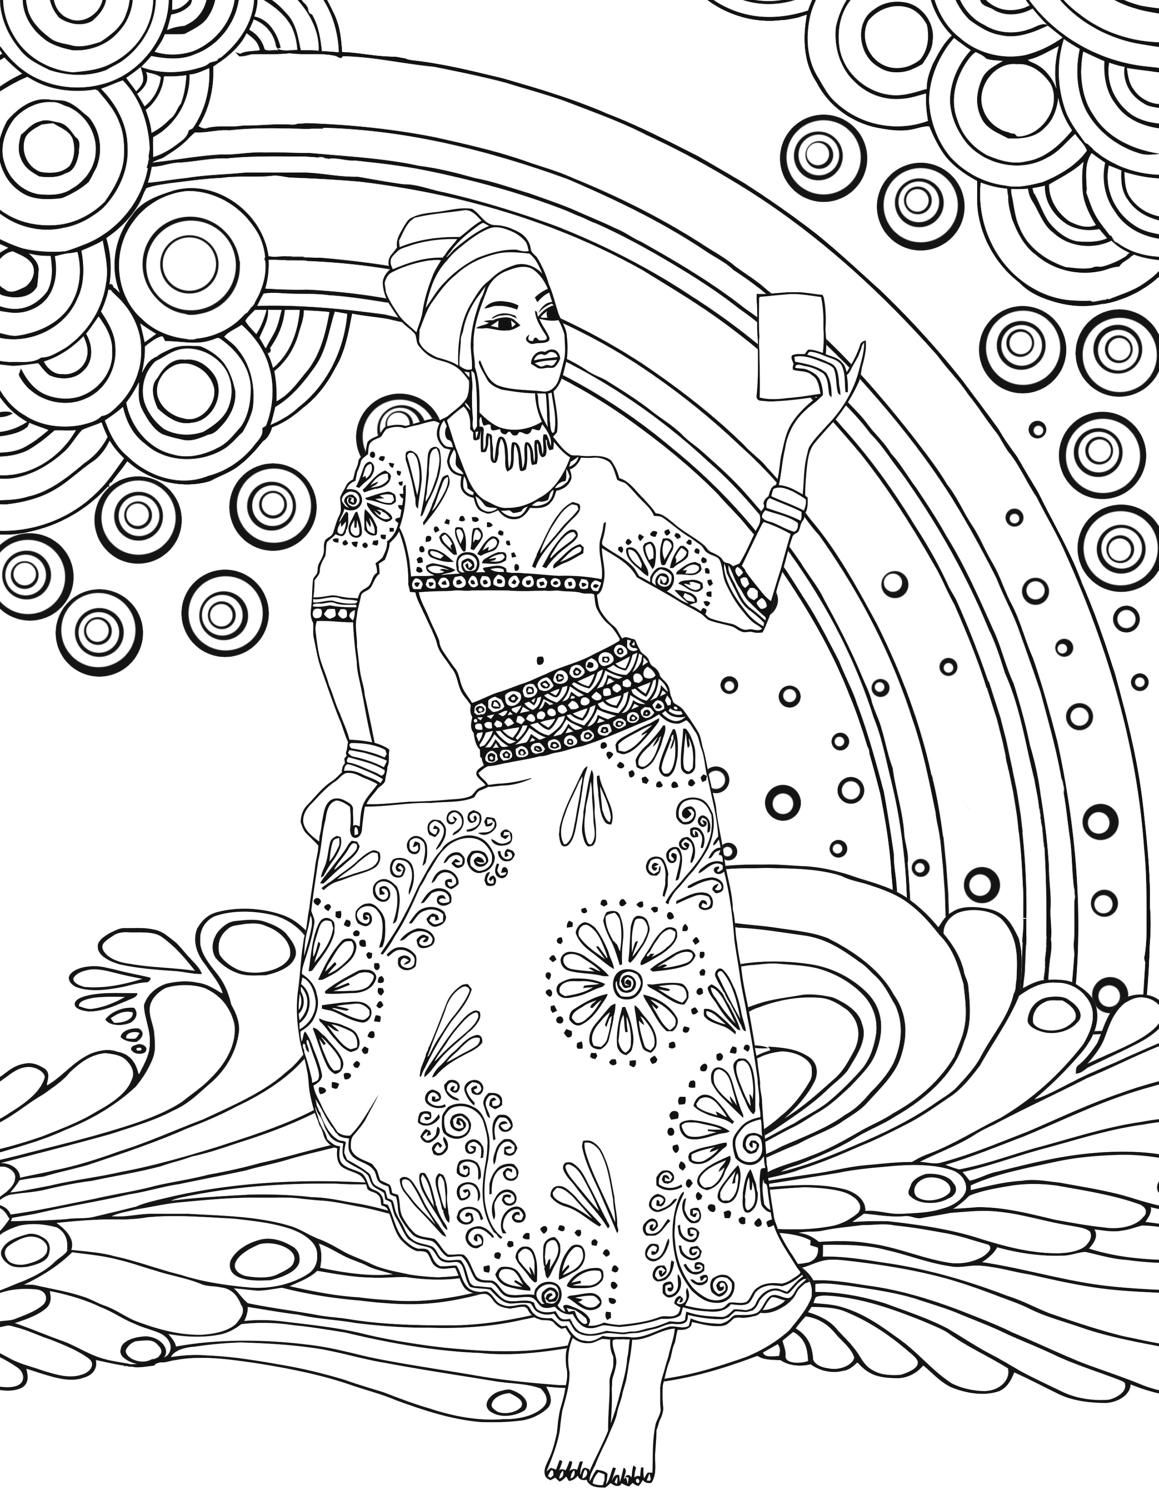 1159x1500 African Goddess Adult Colouring Page, Printable Coloring Pages Zen